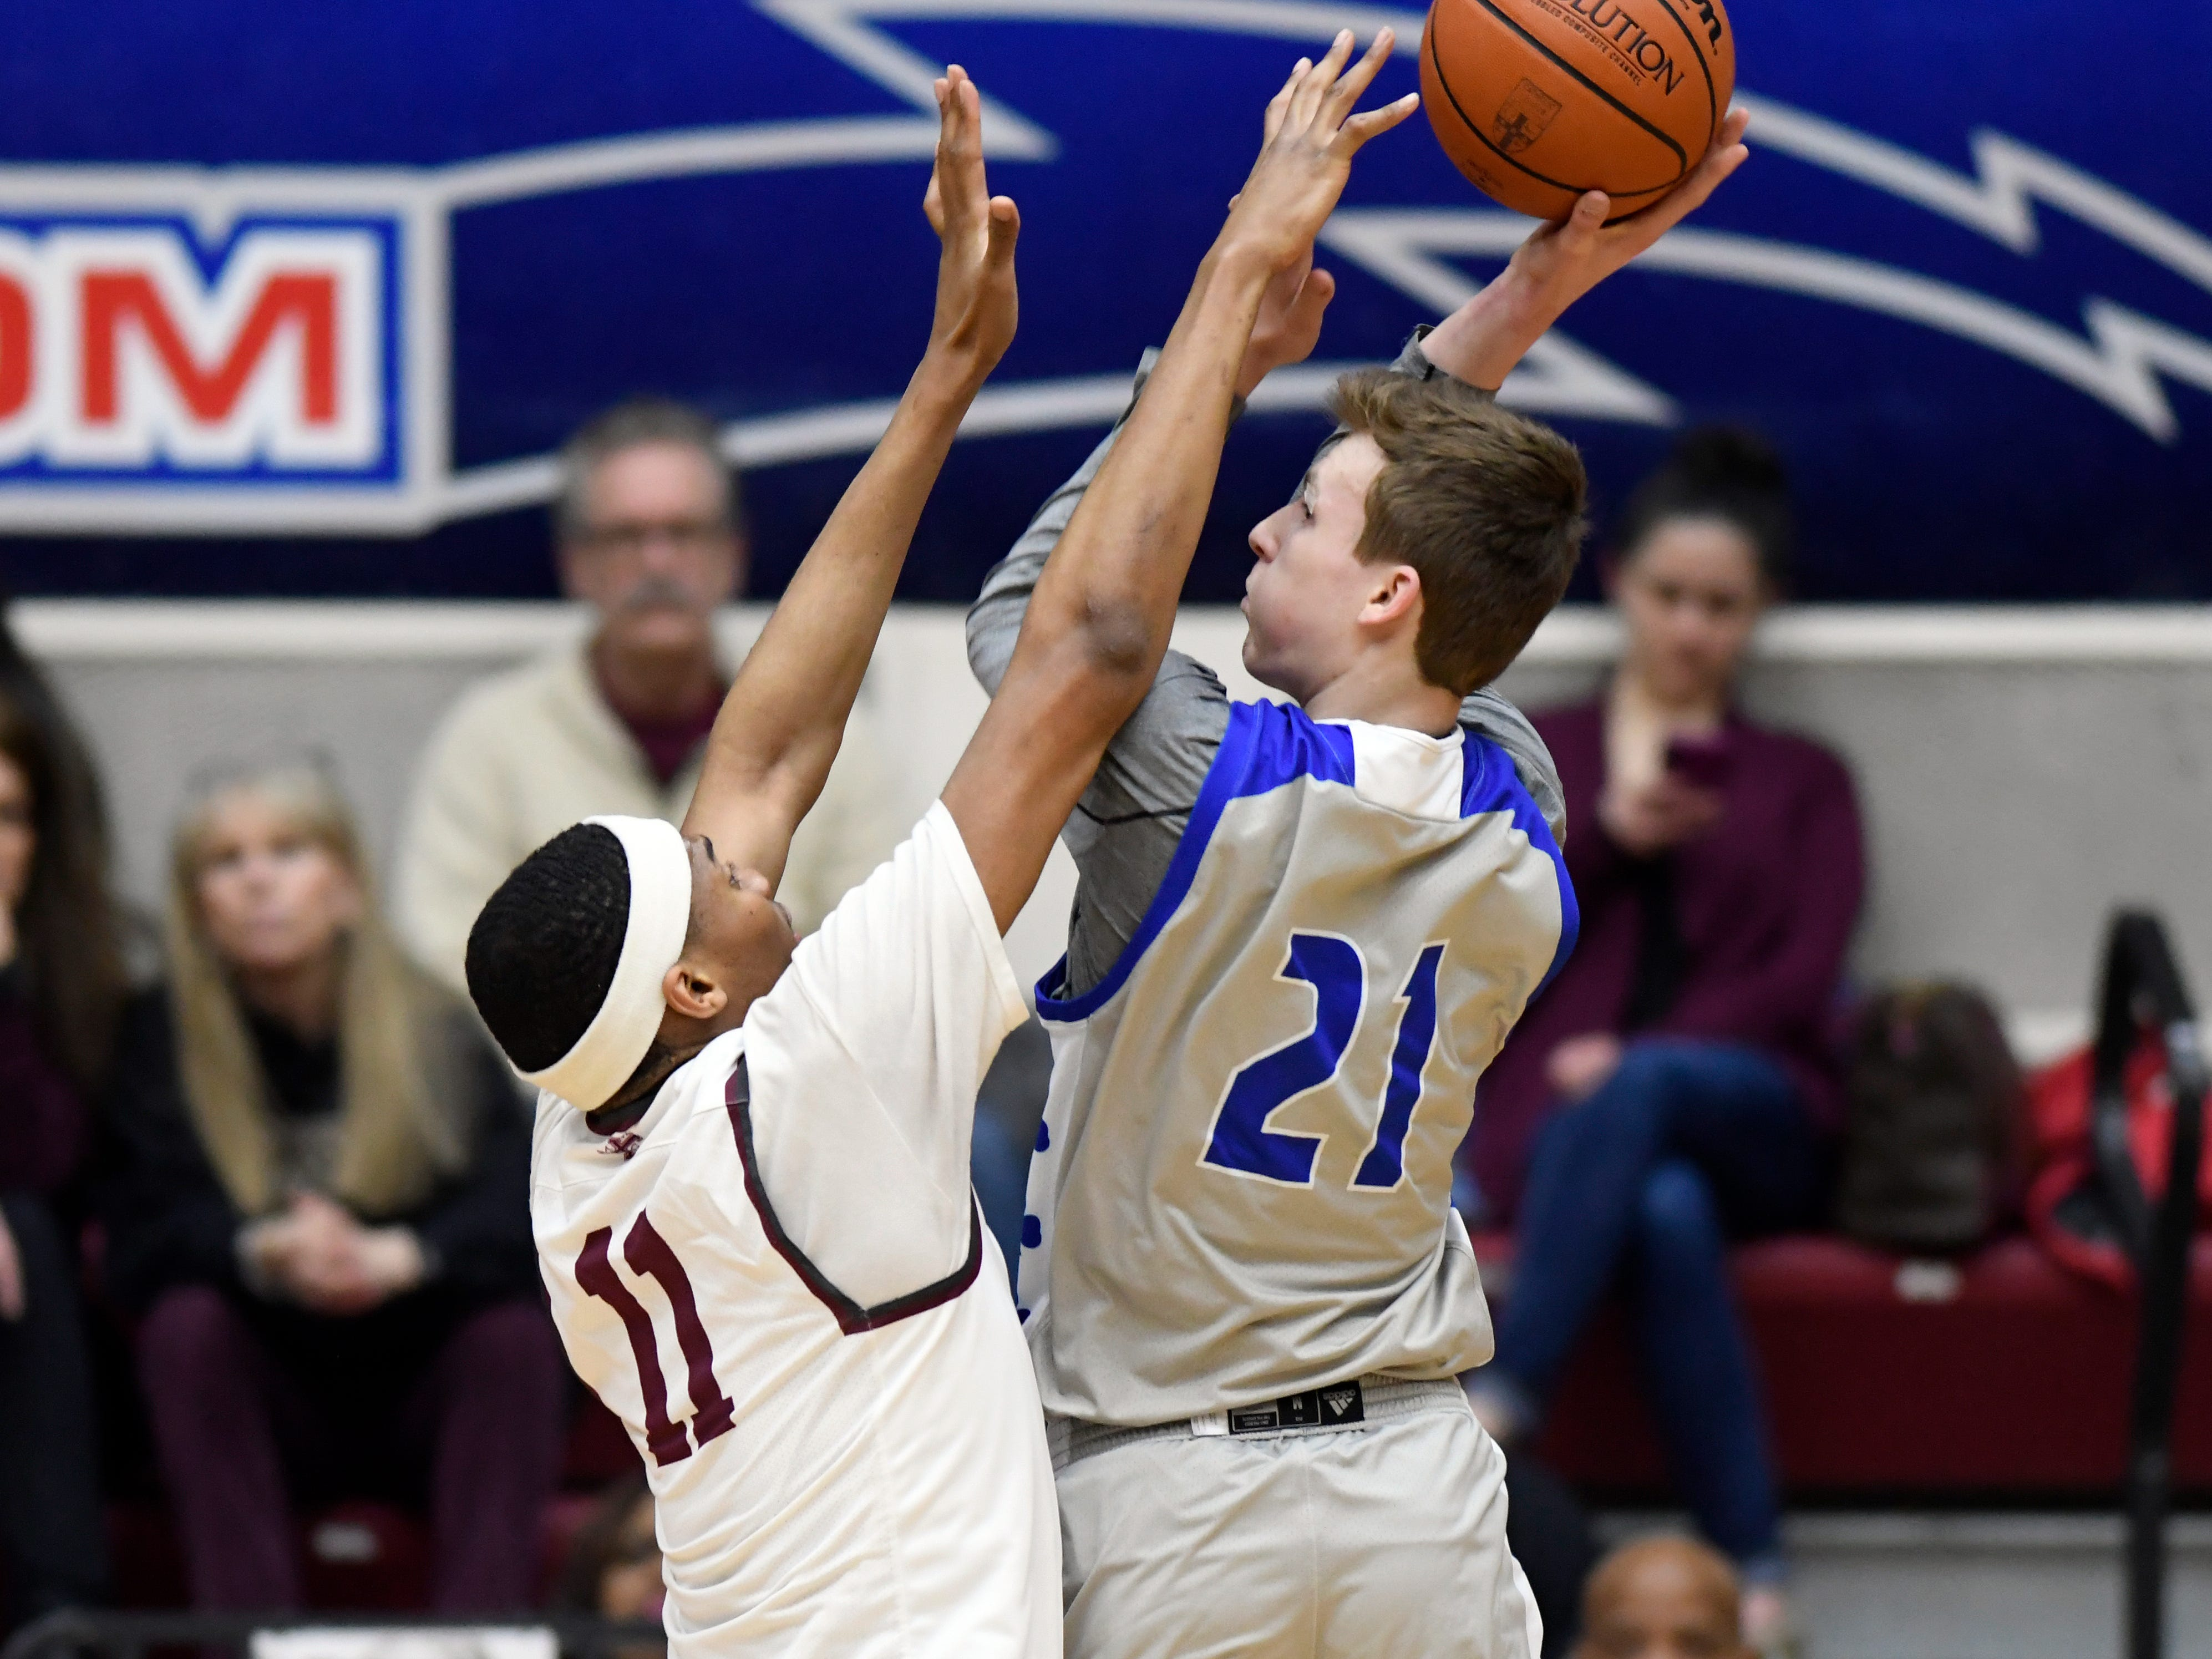 Detroit Catholic Central's Justin Rukat (21) puts up a shot over U. of D Jesuit forward Jalen Thomas (11) during the first quarter, Saturday, Feb. 16, 2019 in a Catholic League A-B Division Final held at Calihan Hall in Detroit. Jesuit defeated Catholic Central 63-54.